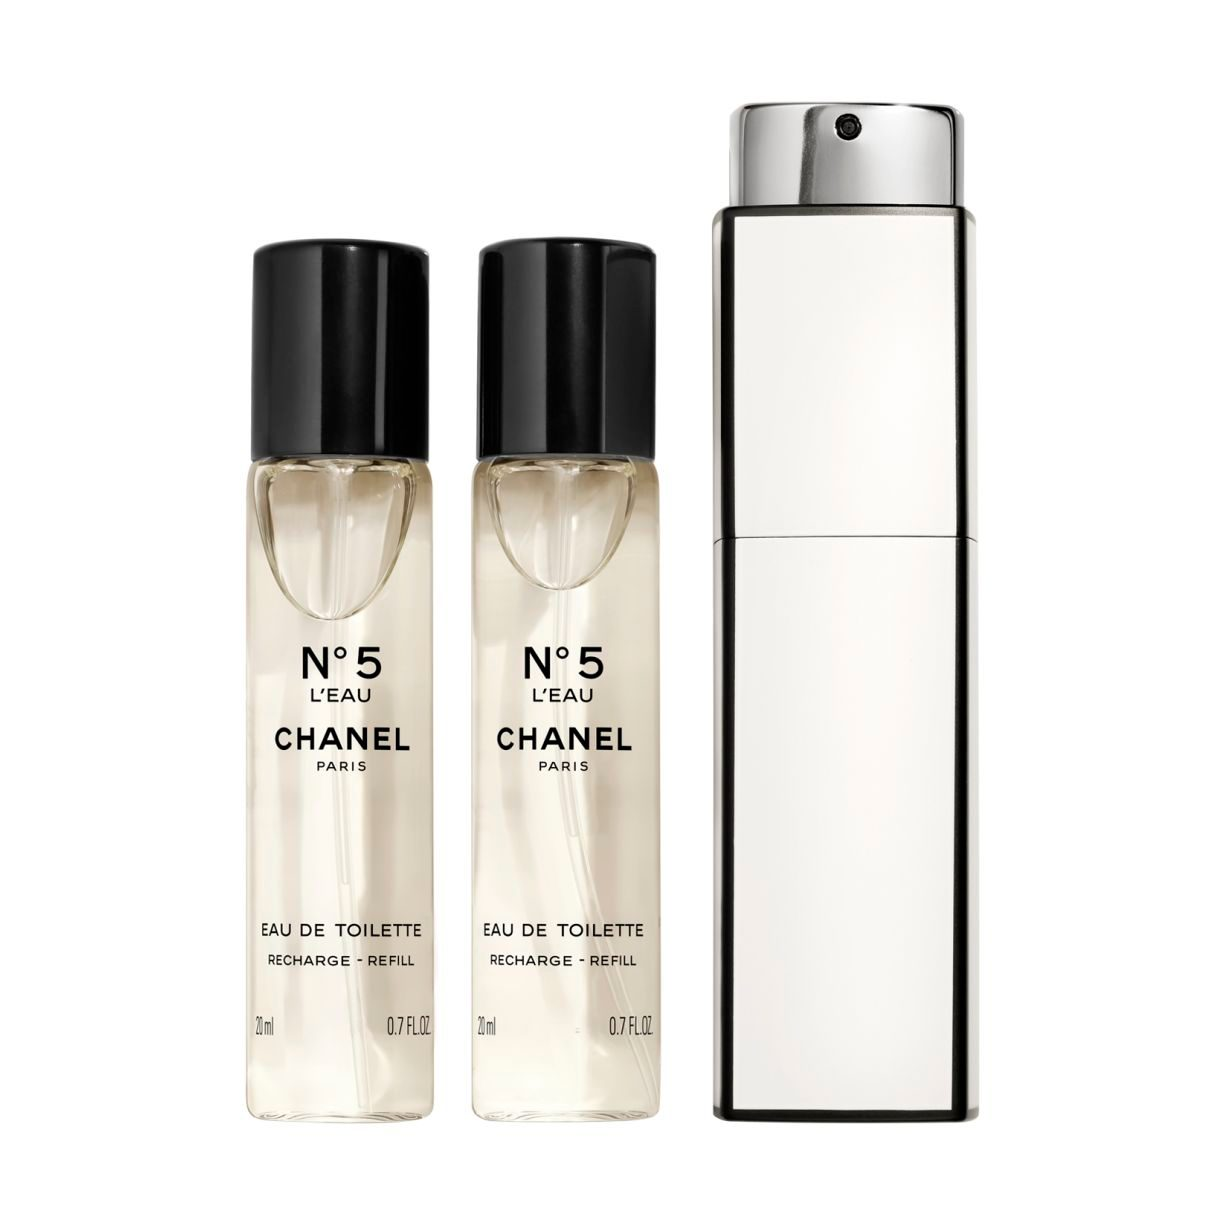 N°5 L'EAU N°5 L'EAU PURSE SPRAY 3 x 20ml